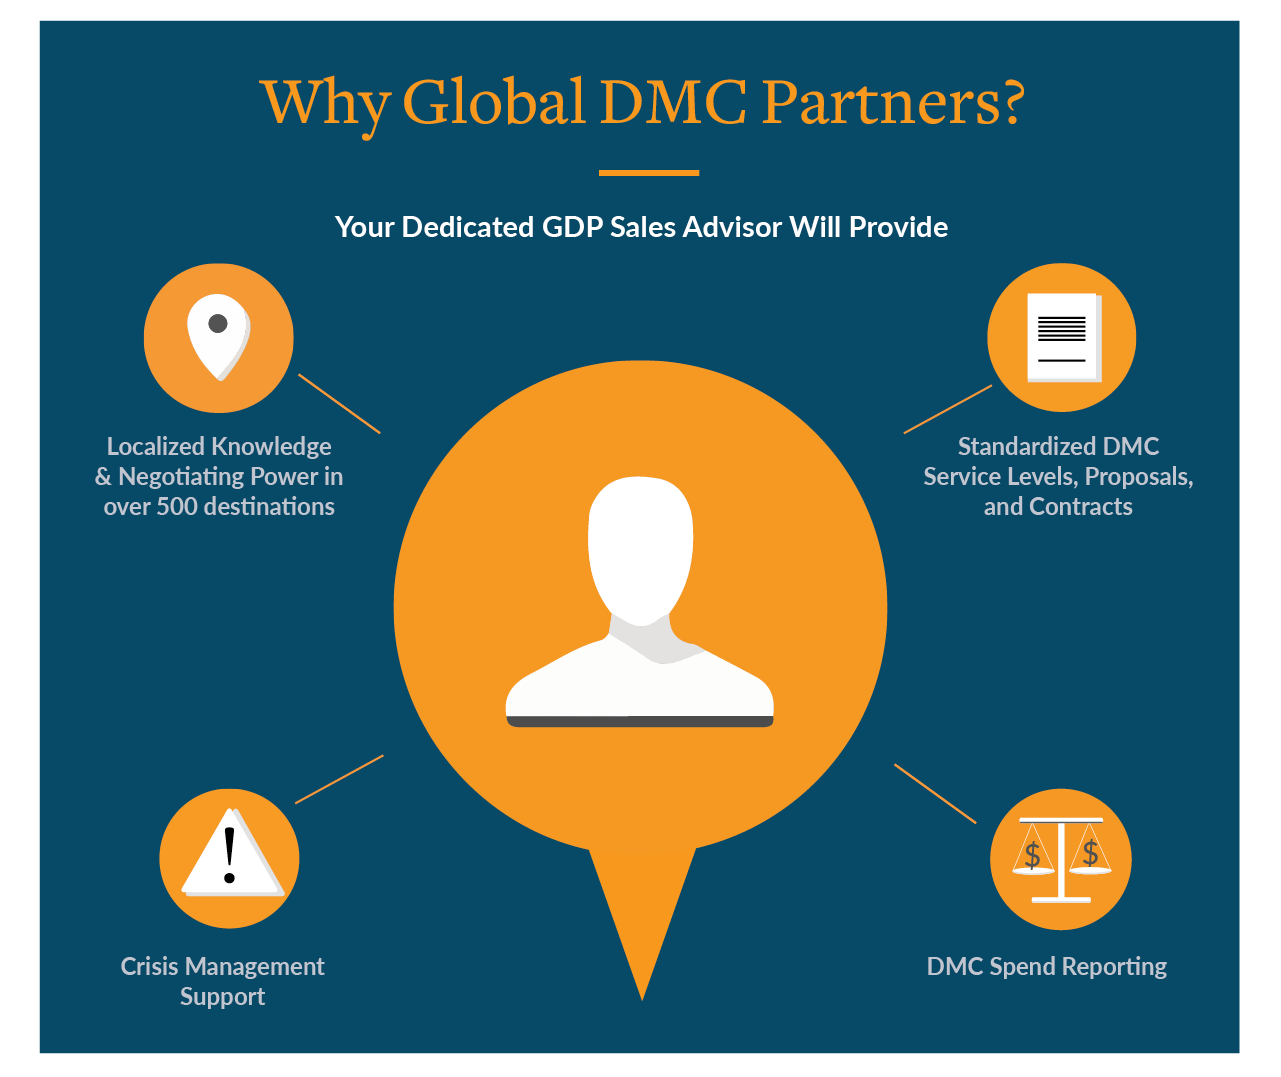 Why Global DMC Partners? Your Dedicated GDP Sales Advisor Will Provide: • Localized Knowledge & Negotiating Power in over 500 destinations  • Standardized DMC Service Levels, Proposals, and Contracts • Crisis Management Support • DMC Spend Reporting